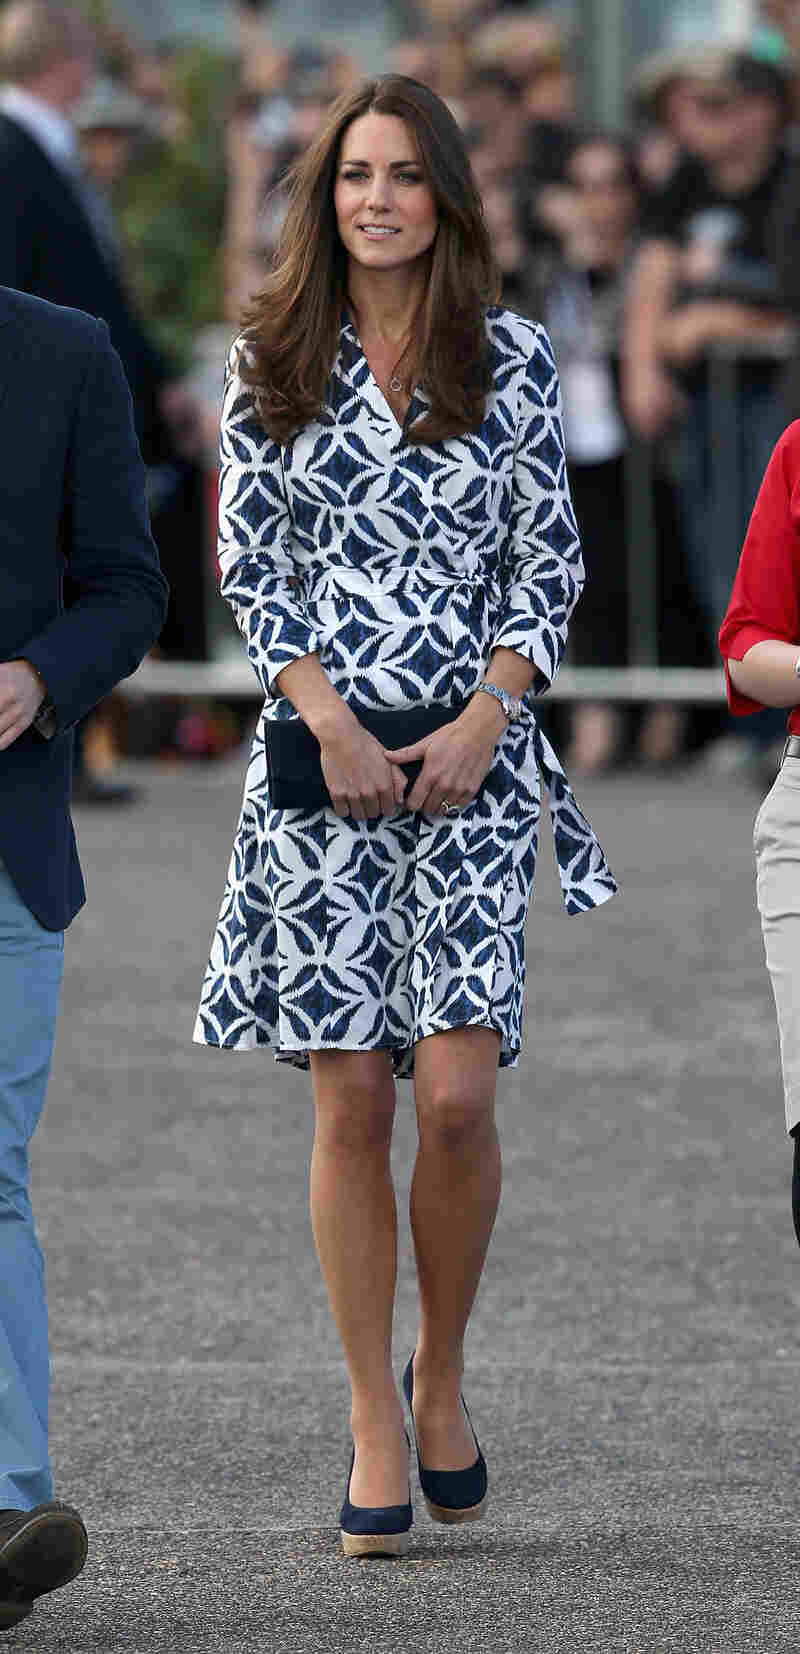 Catherine, Duchess of Cambridge, wore a Diane von Furstenberg wrap dress during her visit to Australia in April. Von Furstenberg, who created the wrap dress some 40 years ago, says she realizes how rare it is for a dress to hold its place in fashion for so long.